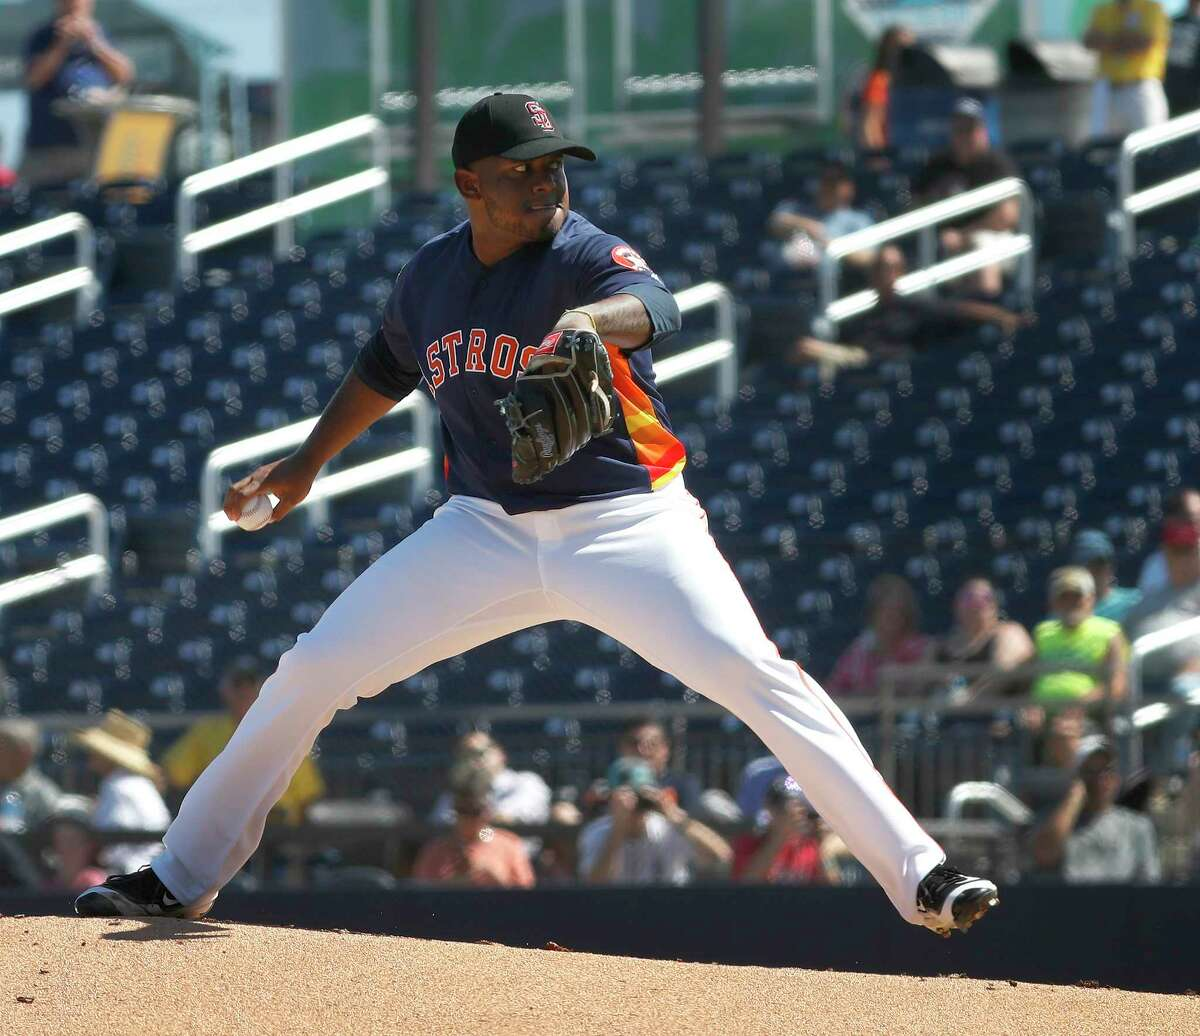 Houston Astros RHP pitcher Rogelio Armenteros (66) pitches in the first inning of the Houston Astros spring training game against the Nationals at The Fitteam Ballpark of the Palm Beaches, Friday, Feb. 23, 2018, in West Palm Beach.